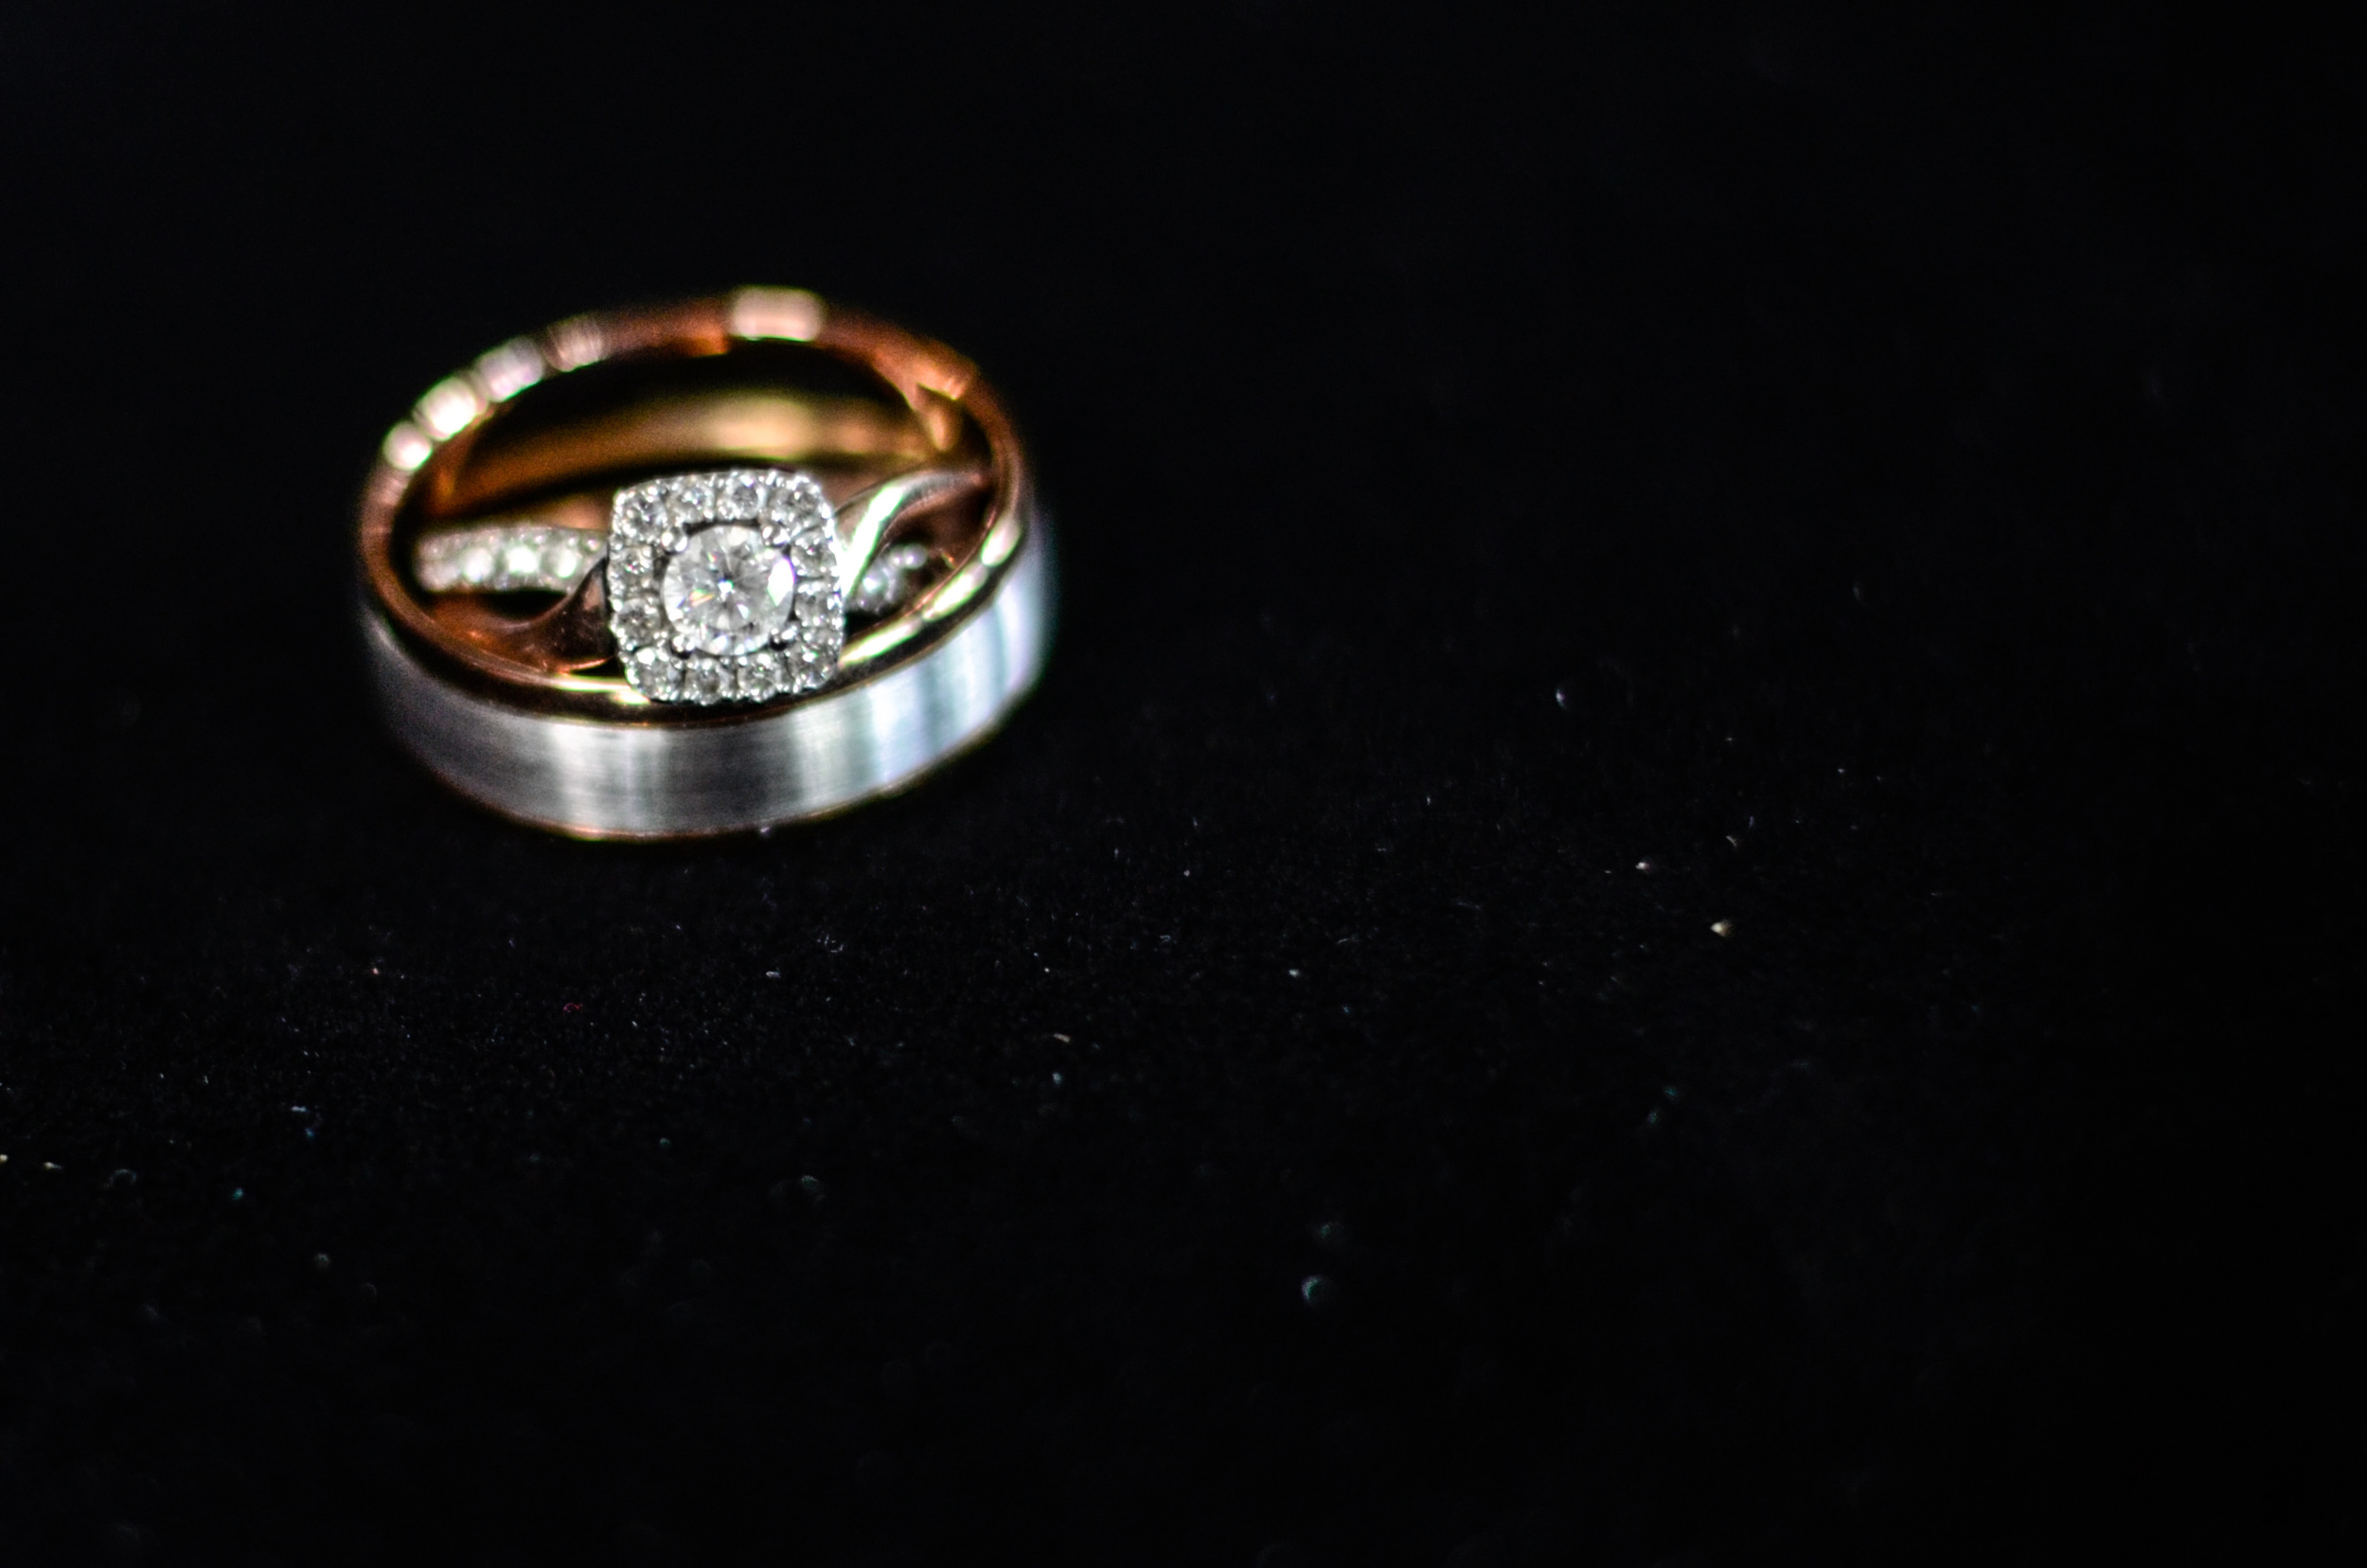 Silver and Rose Gold engagement ring and Groom's wedding band.